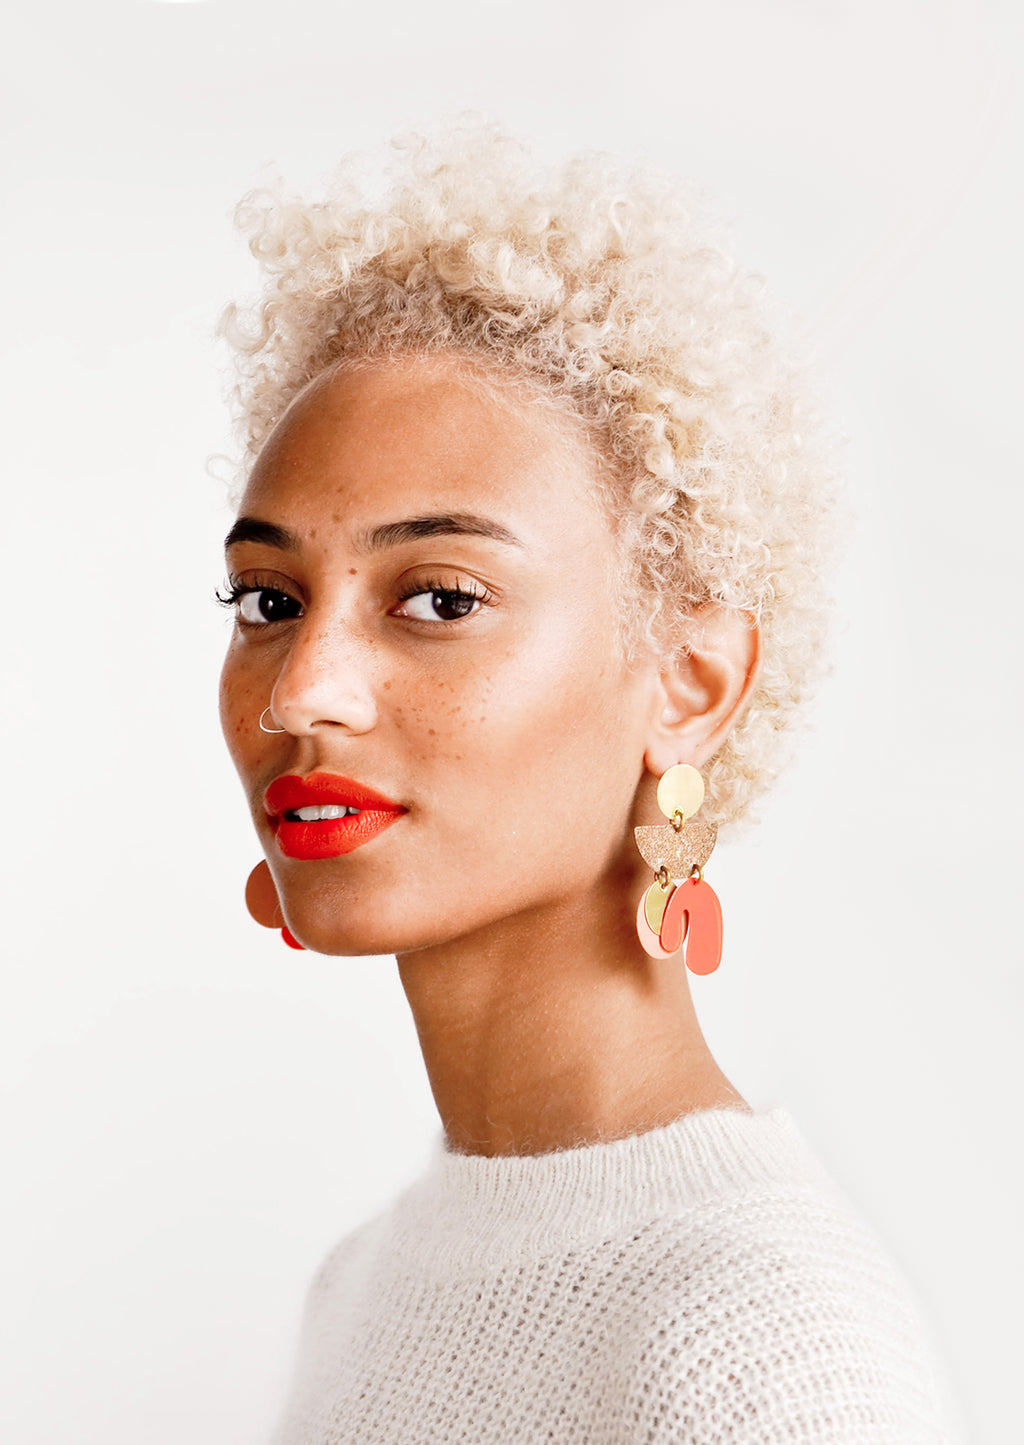 2: Model wears orange and gold earrings with white top.